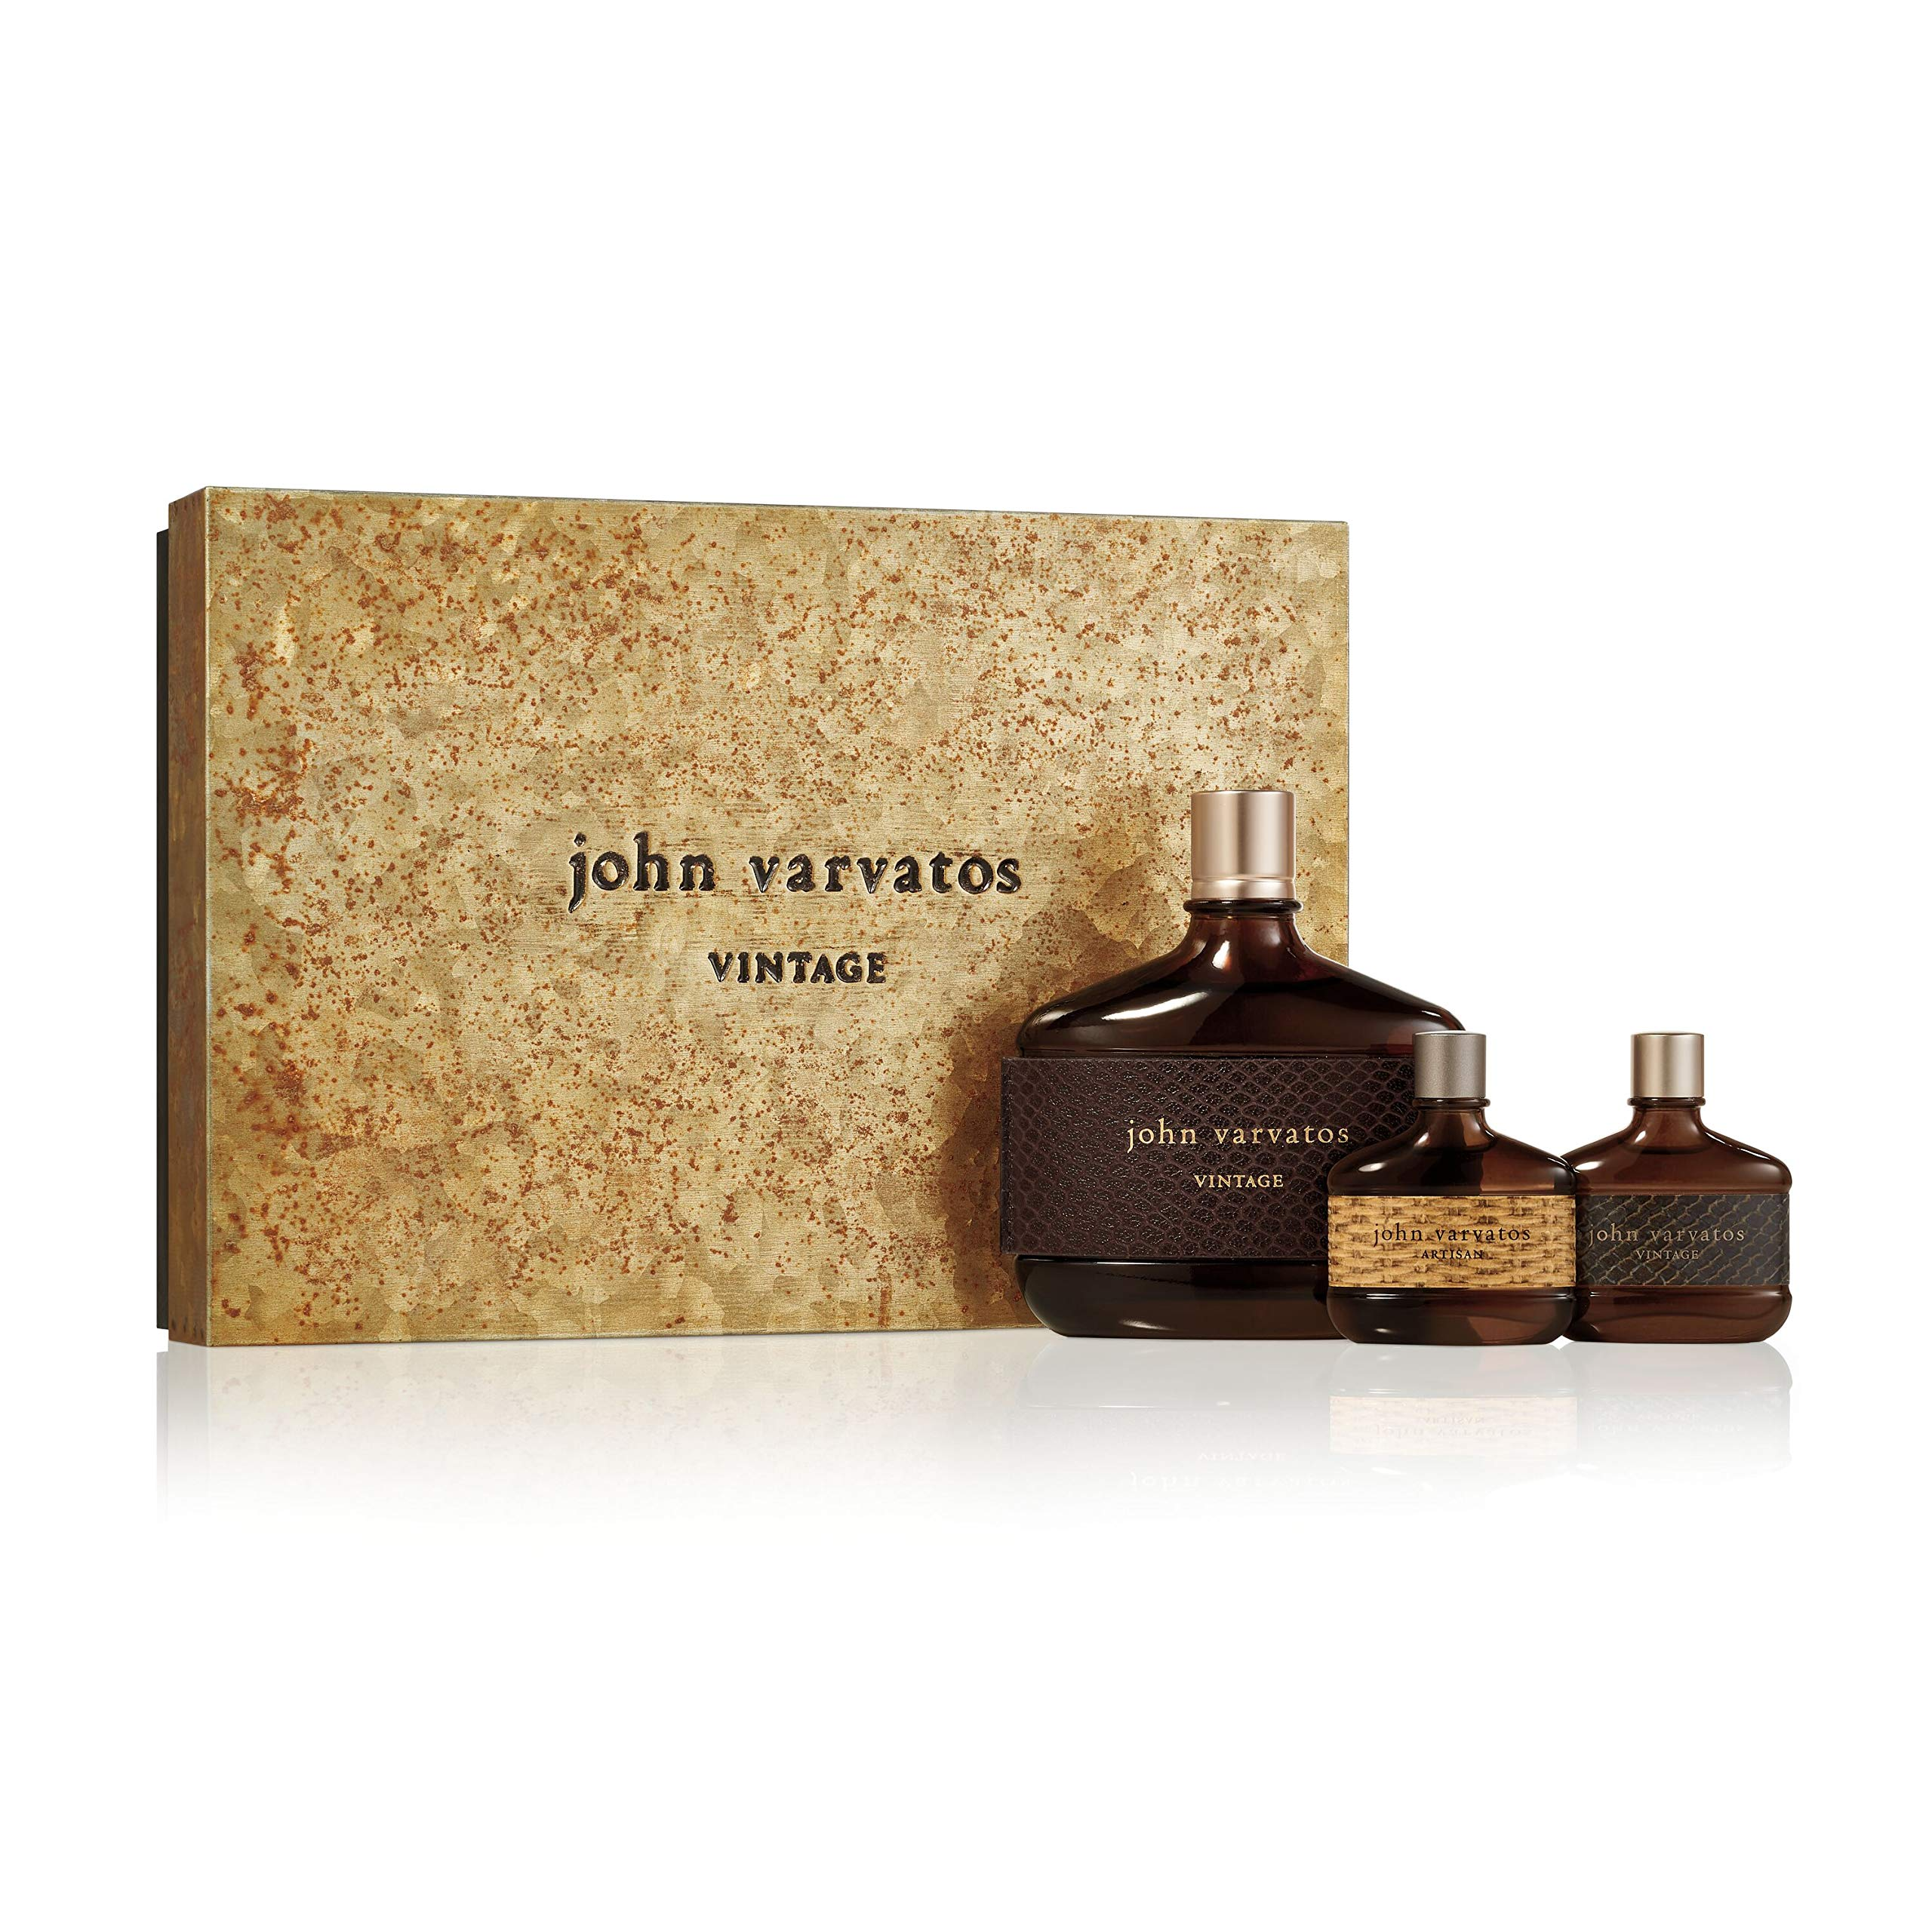 John Varvatos Vintage 3 Piece Fragrance Gift Set, Cologne for Men, 3 ct. by John Varvatos